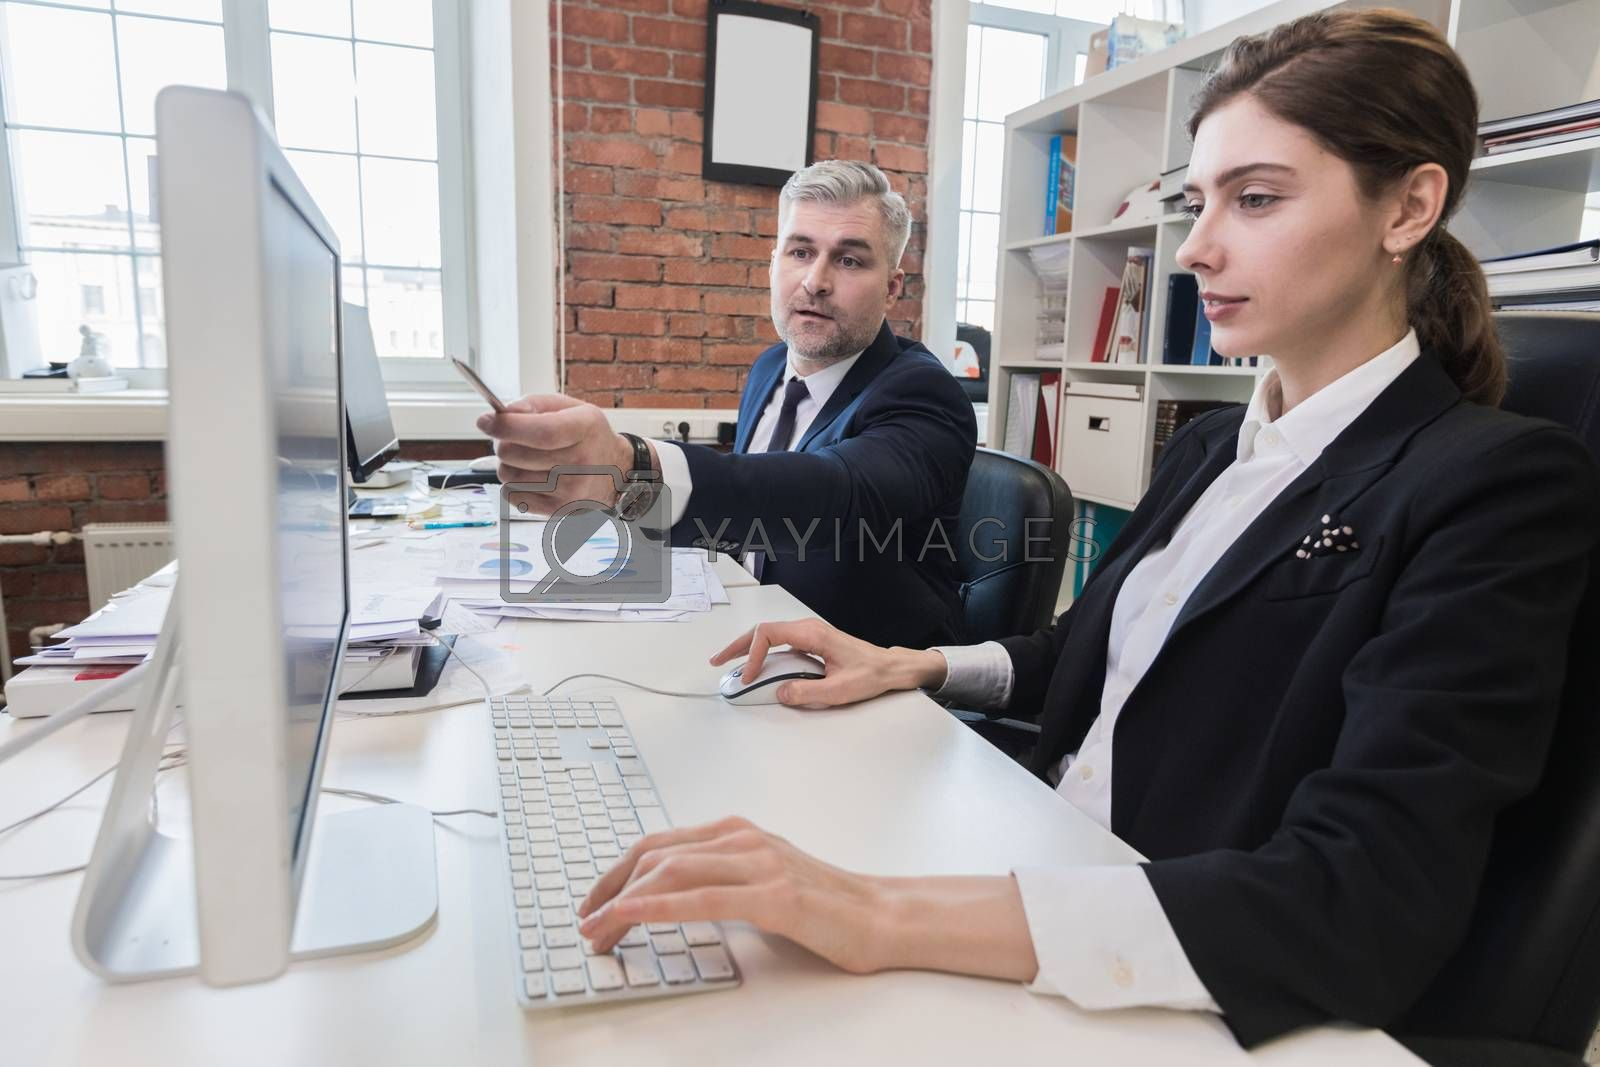 Business people working at office together, financial data, statistics, paperwork, Man pointing at computer monitor